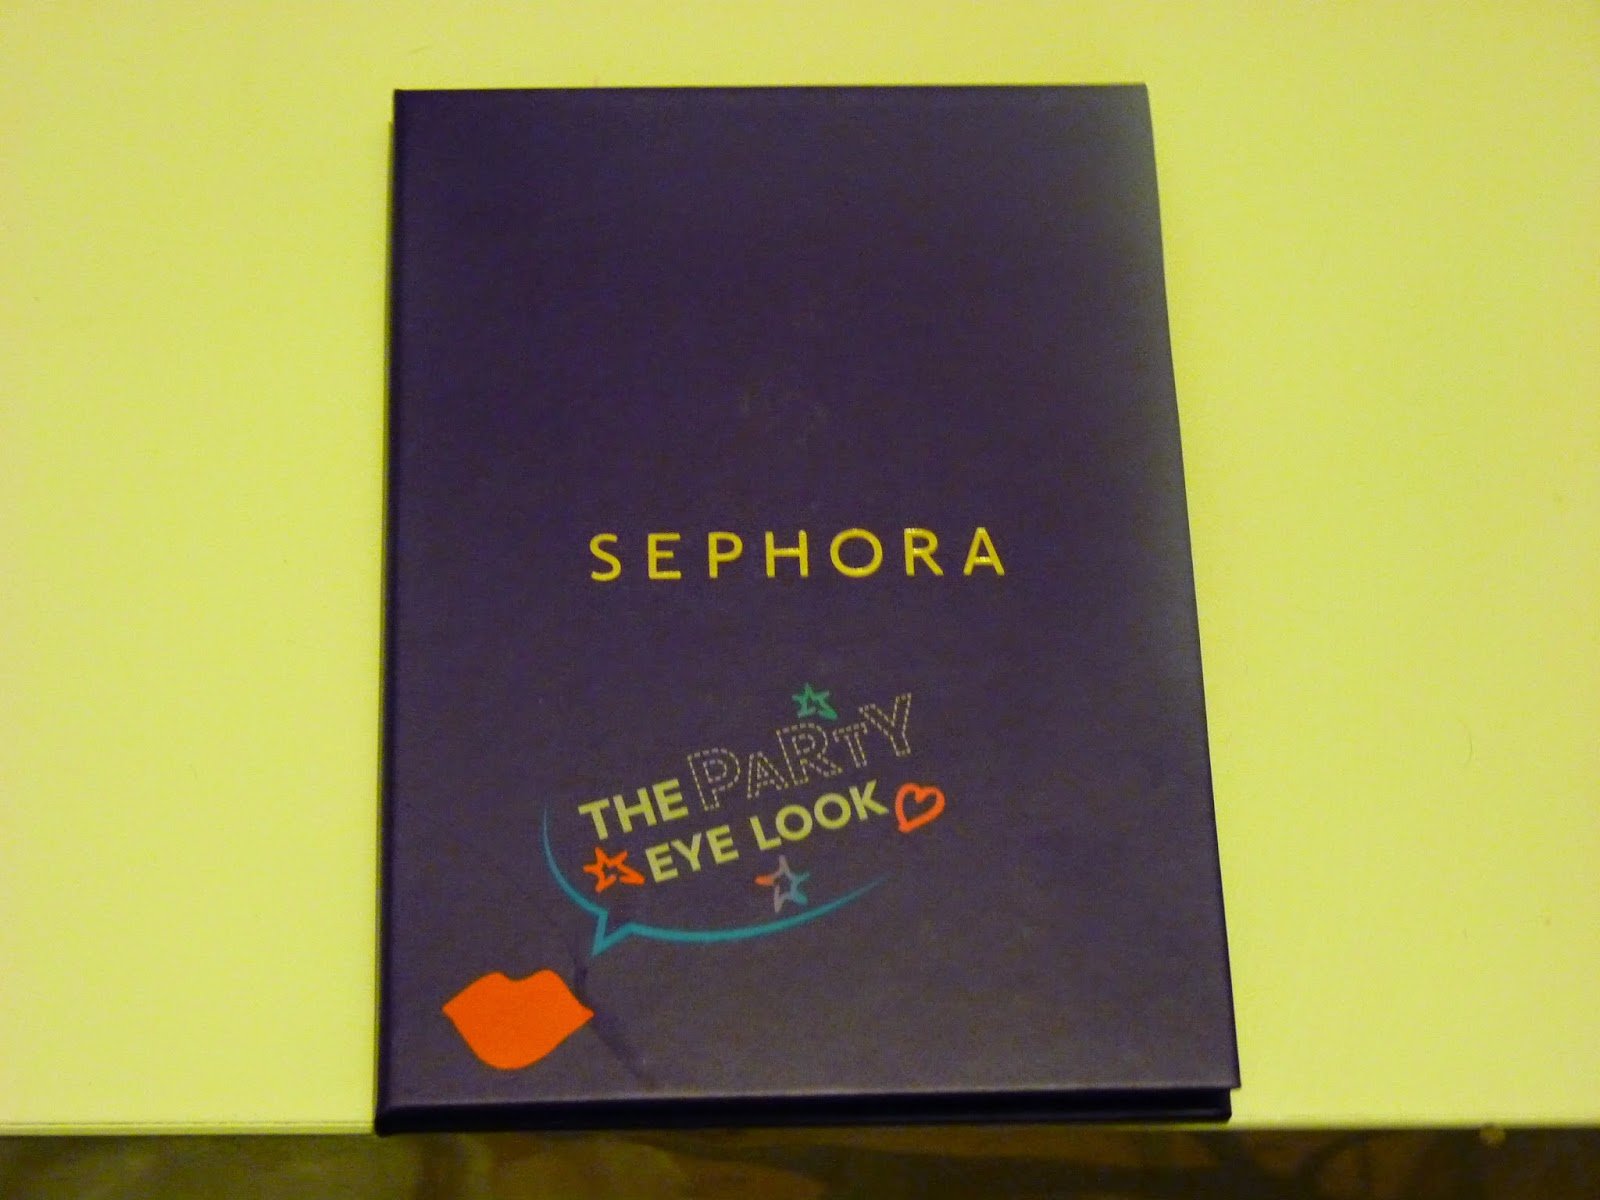 sephora, 4 eye look book, party, violet